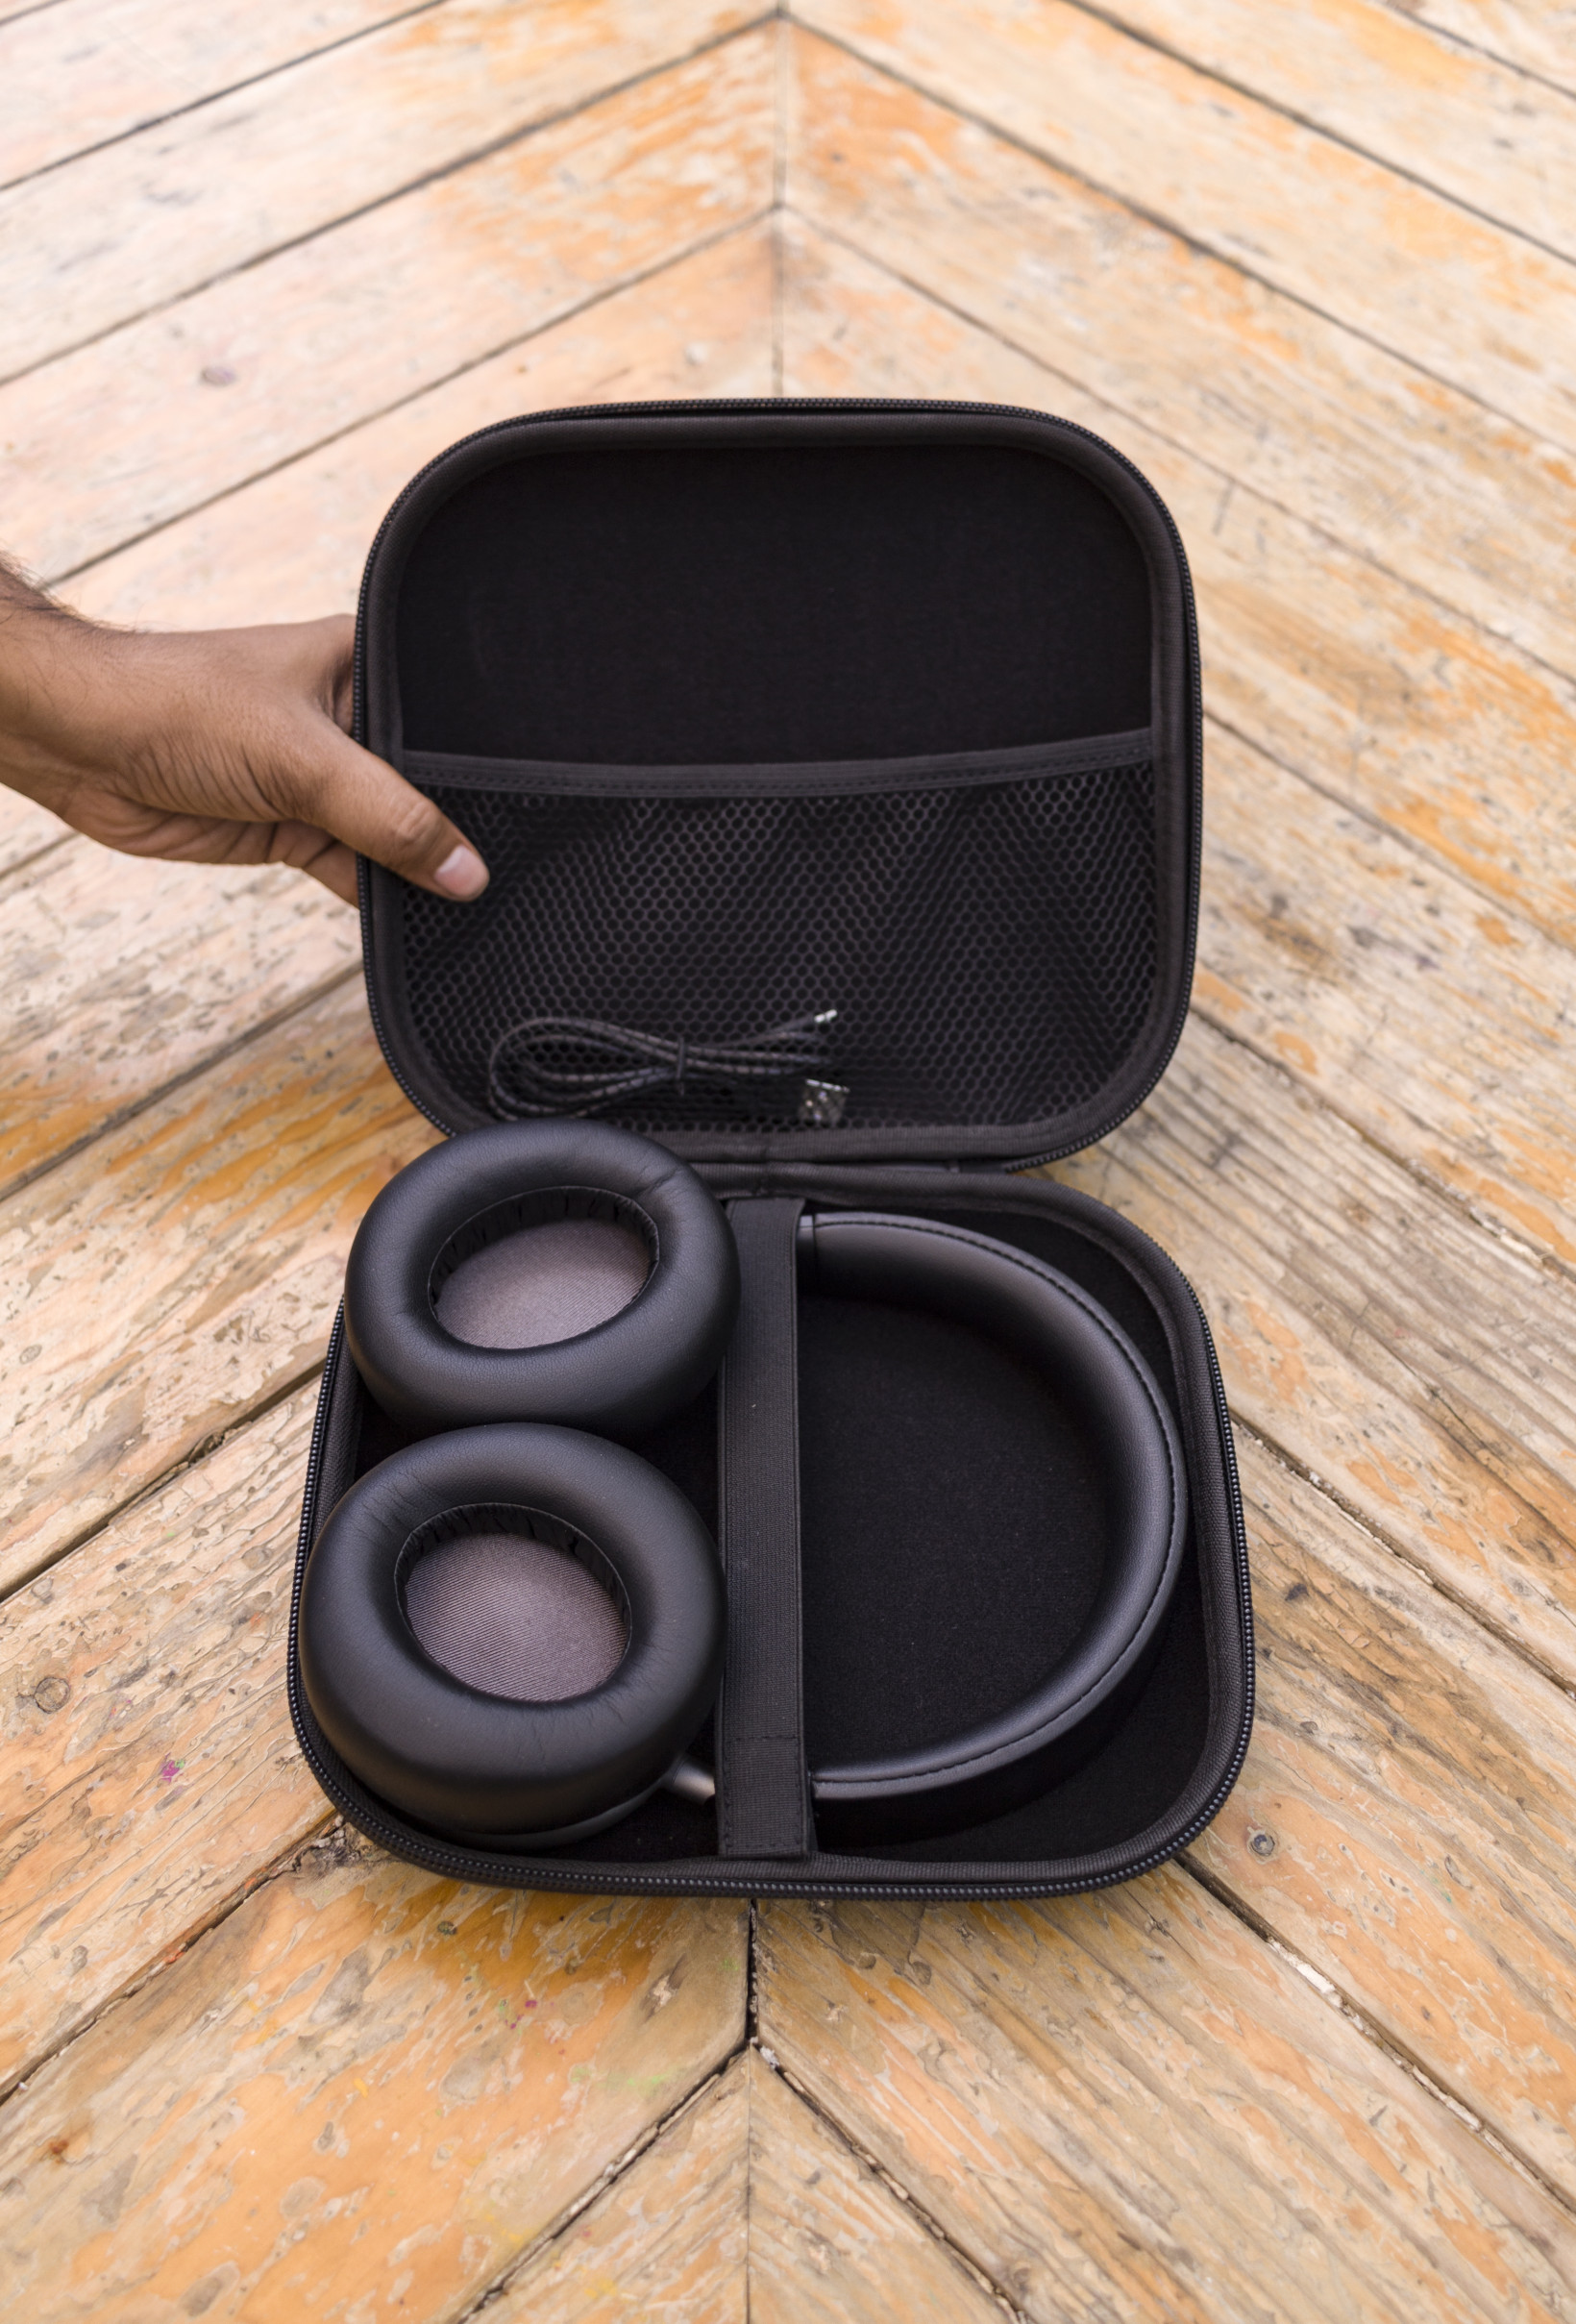 The Soundsurge 46 Headphones come with a solid case